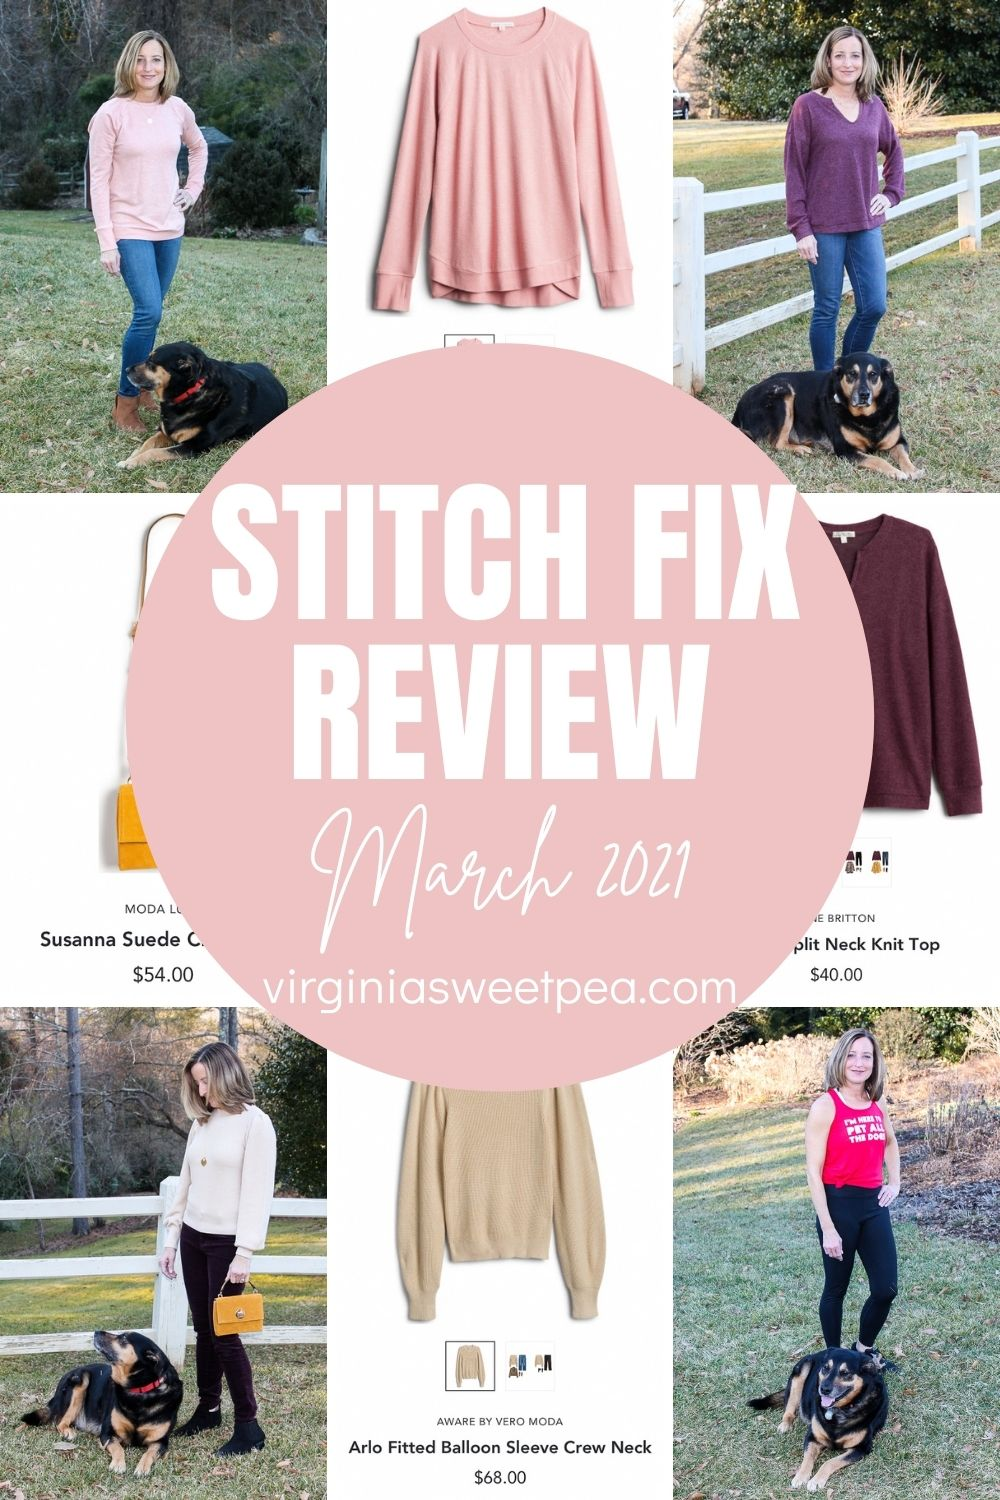 March is here and this month's Stitch Fix box was filled with fashions to enjoy as winter fades into spring.  Stitch Fix outfits dominate my wardrobe and the tops, sweaters, and leggings sent are perfect to wear for March.  See all the details on each item and get Stitch Fix inspiration for your next box.  #stitchfix #stitchfixreview via @spaula